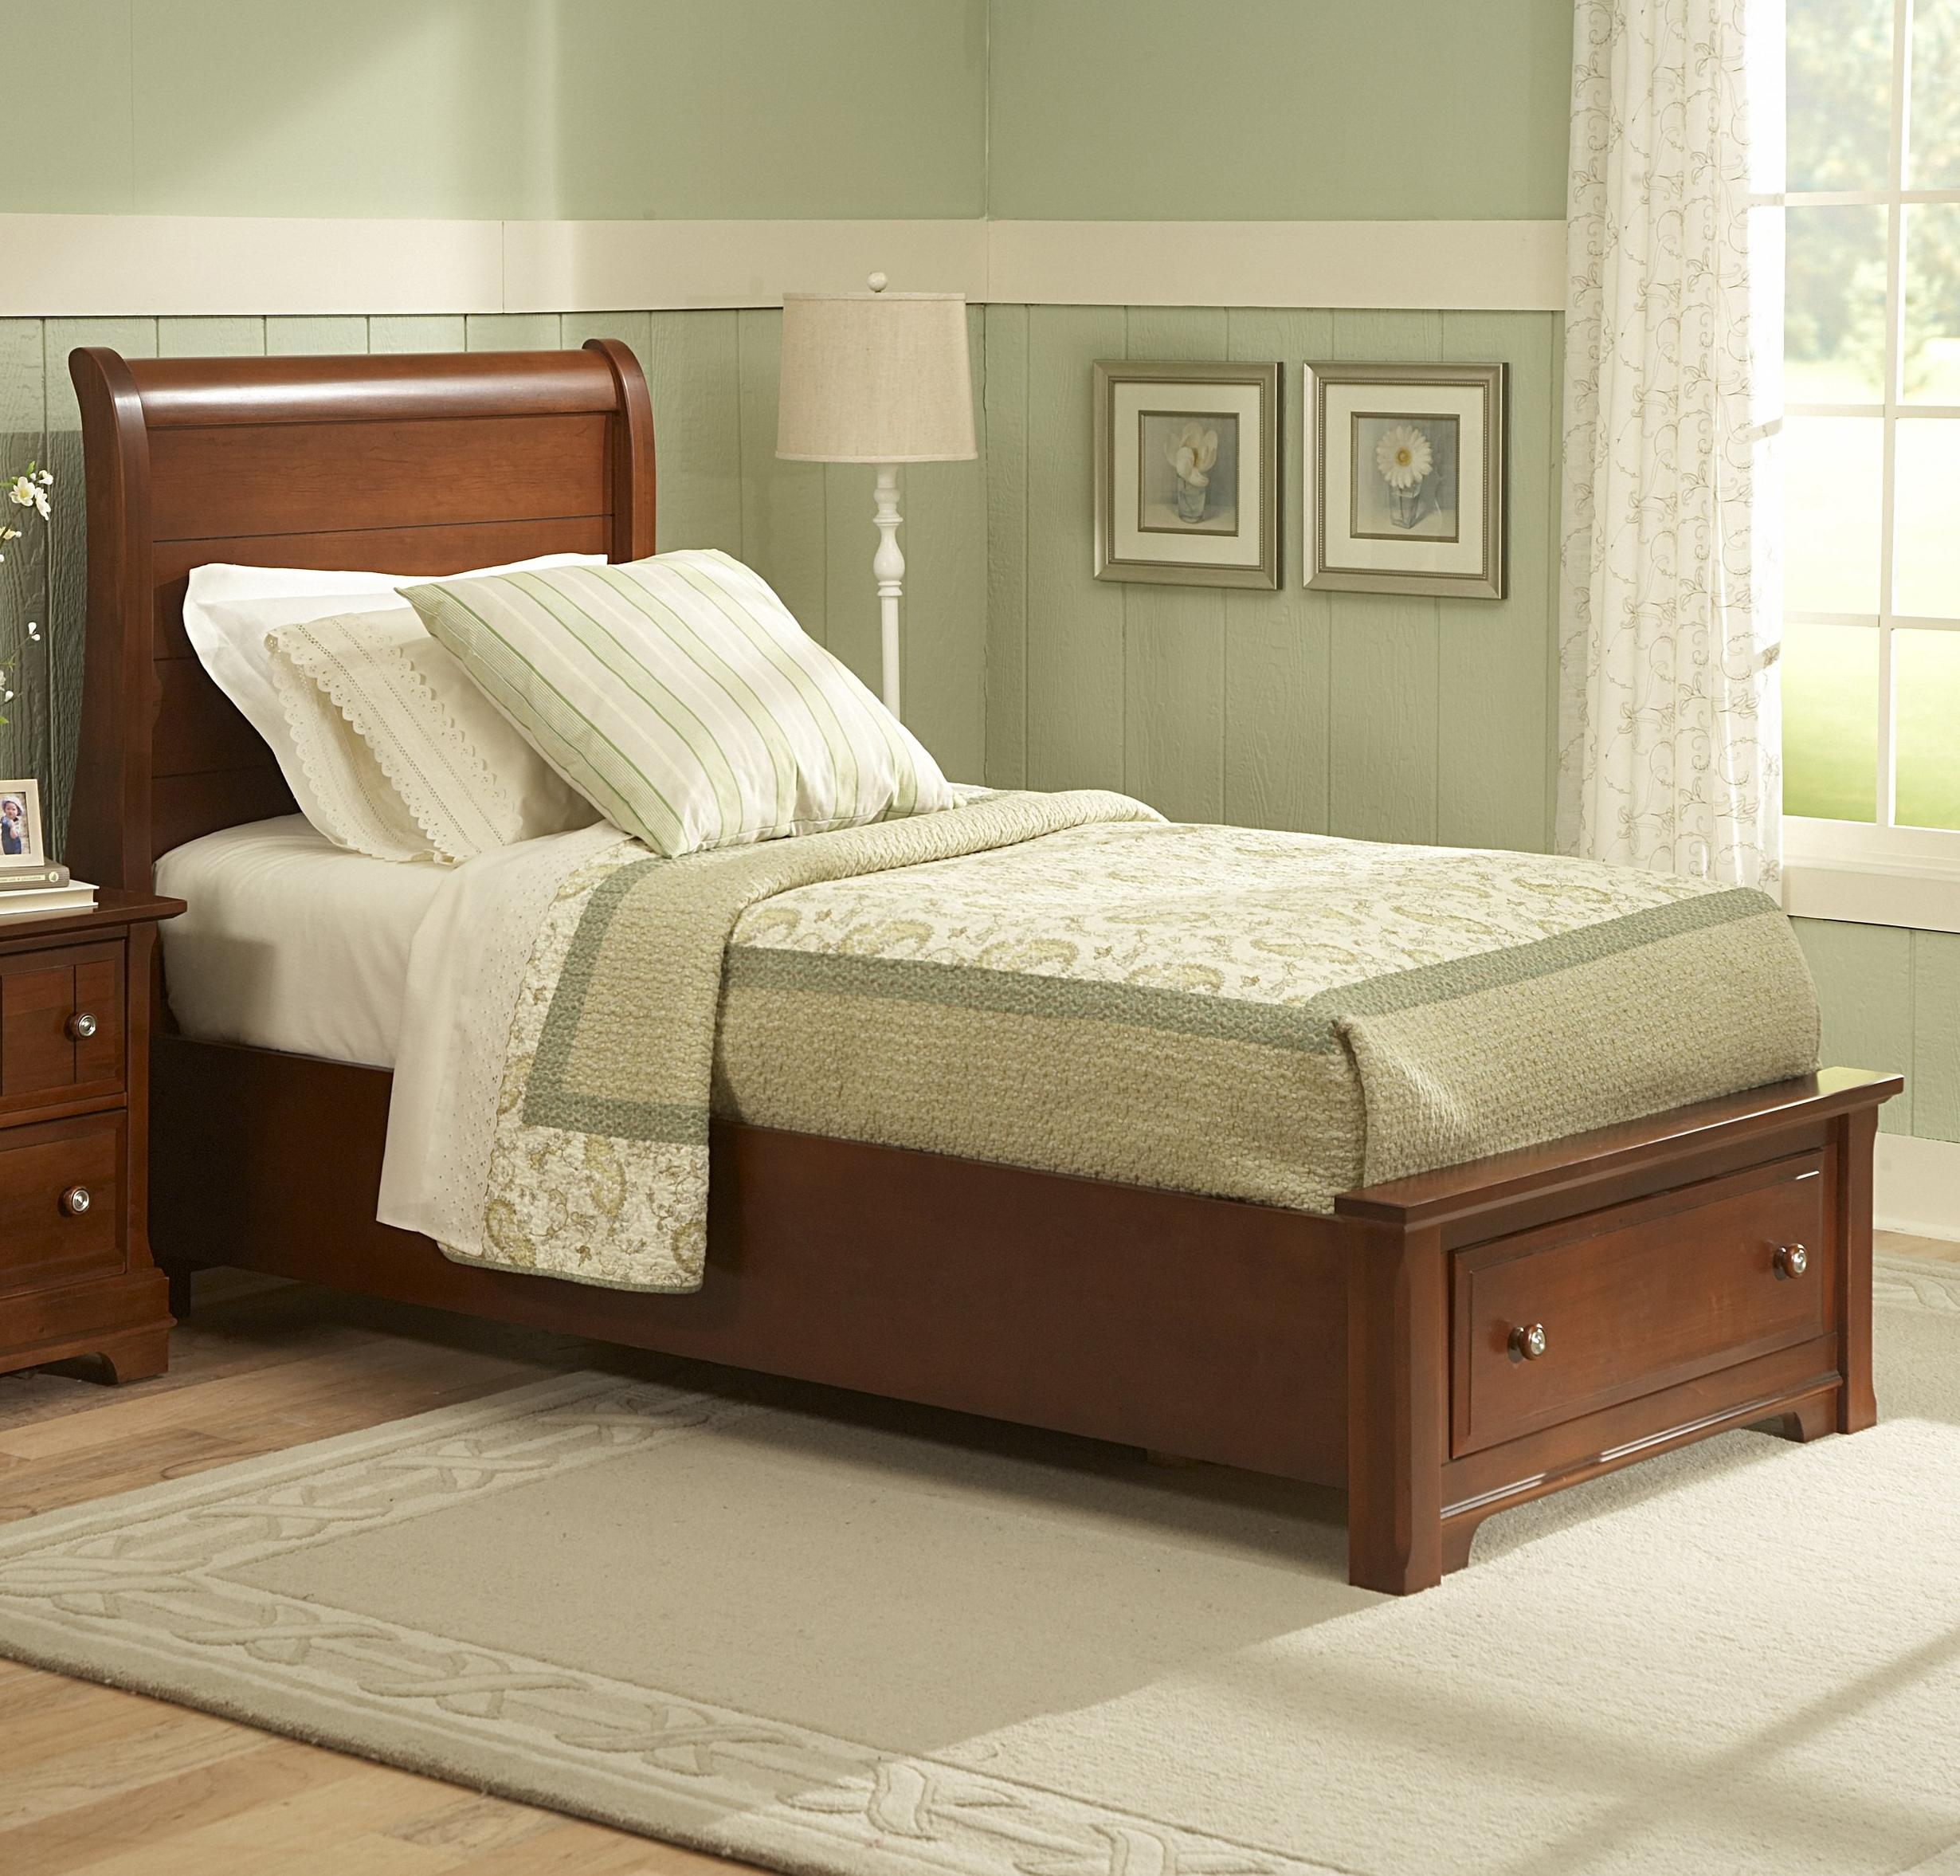 Vaughan Bassett Cottage Queen Sleigh Storage Bed - Item Number: BB19-553+050B+555T+502